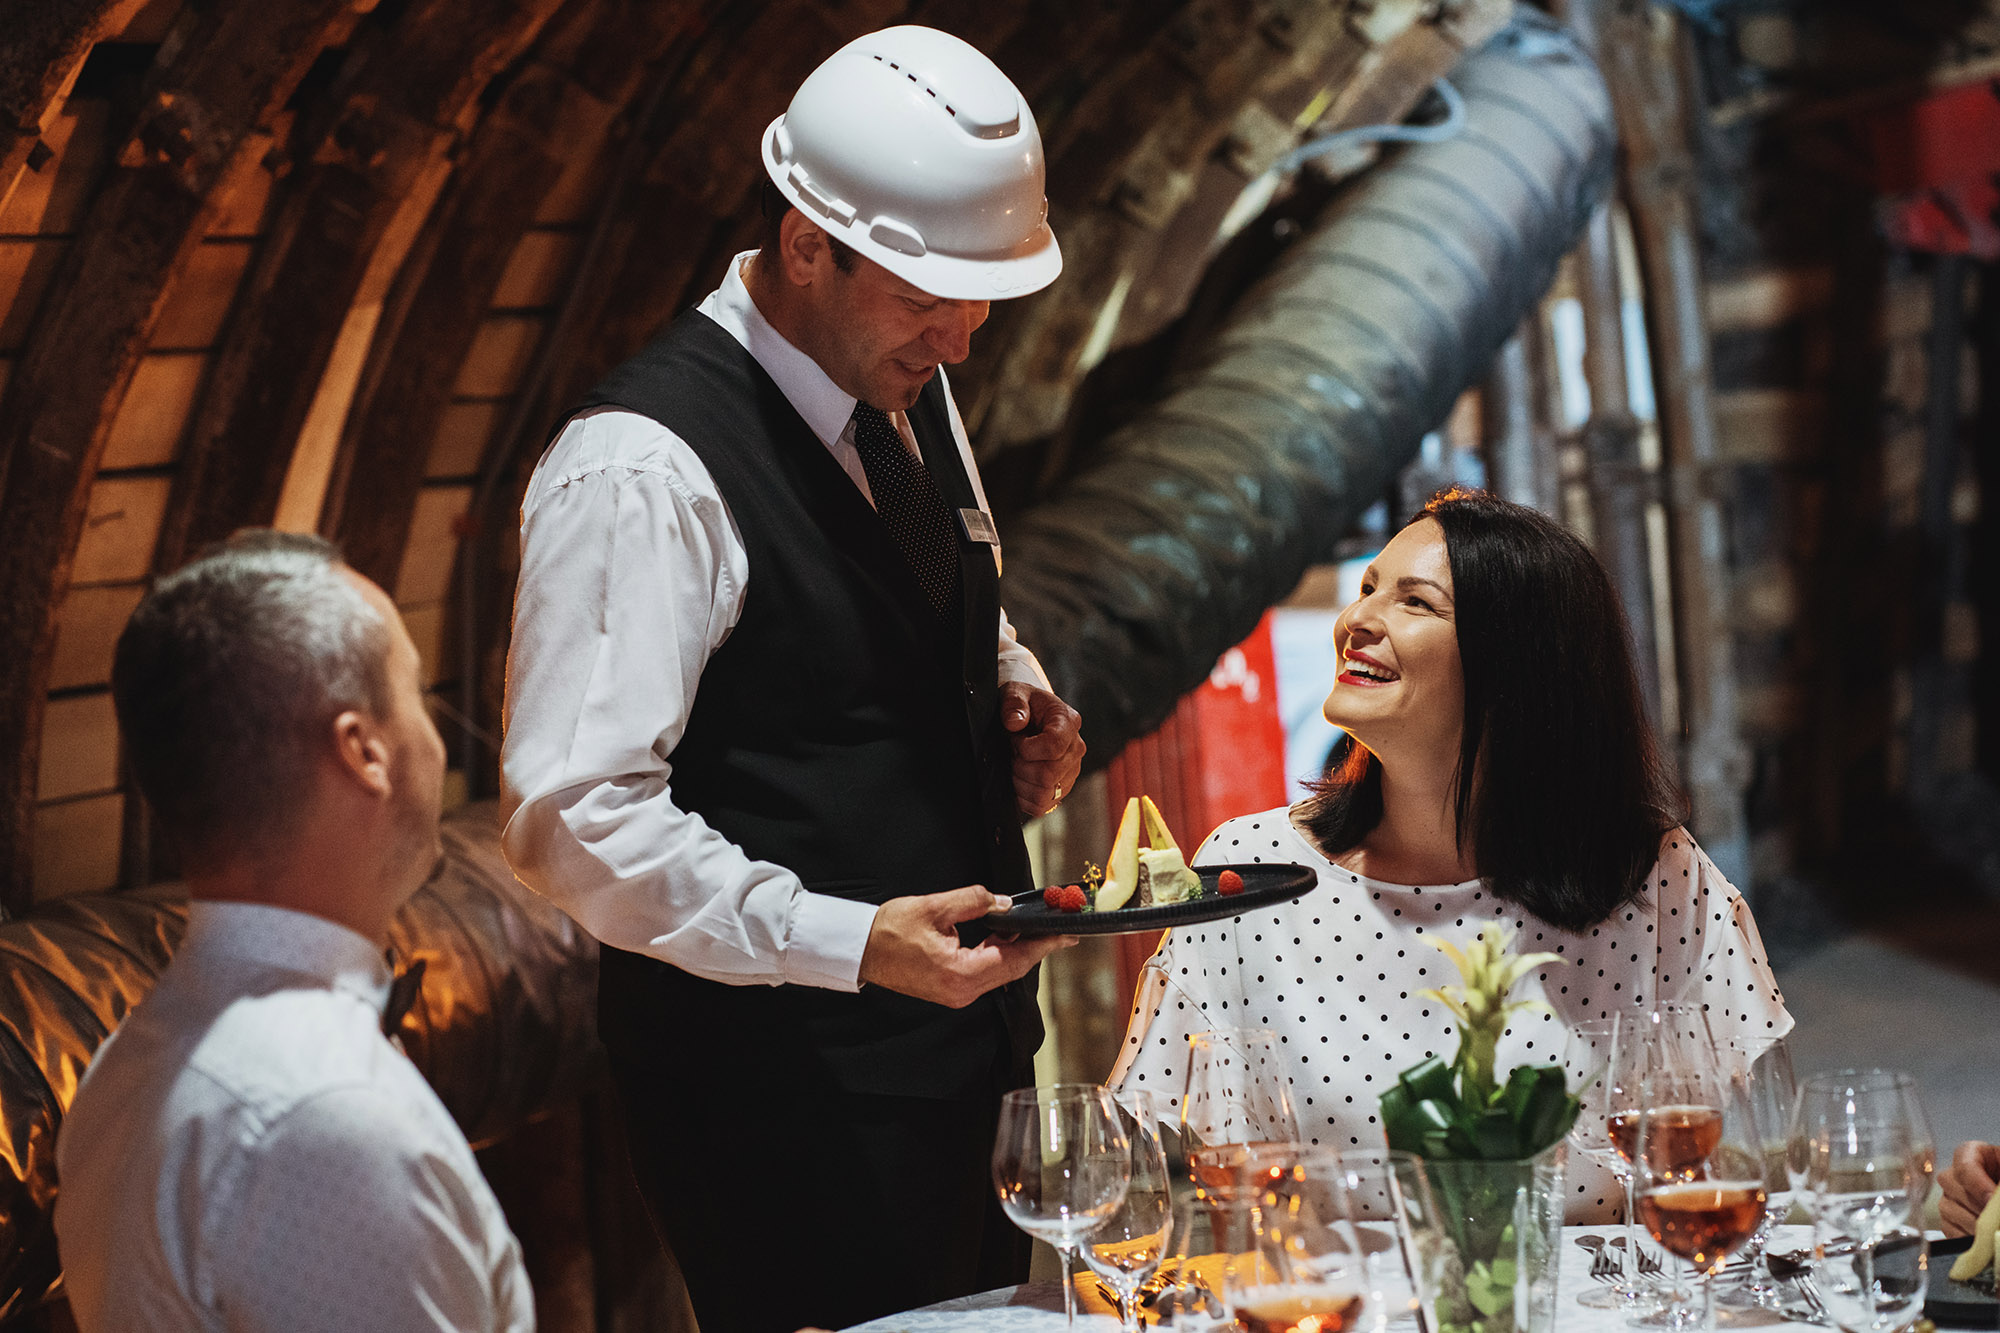 fine dining in a Slovenian mine